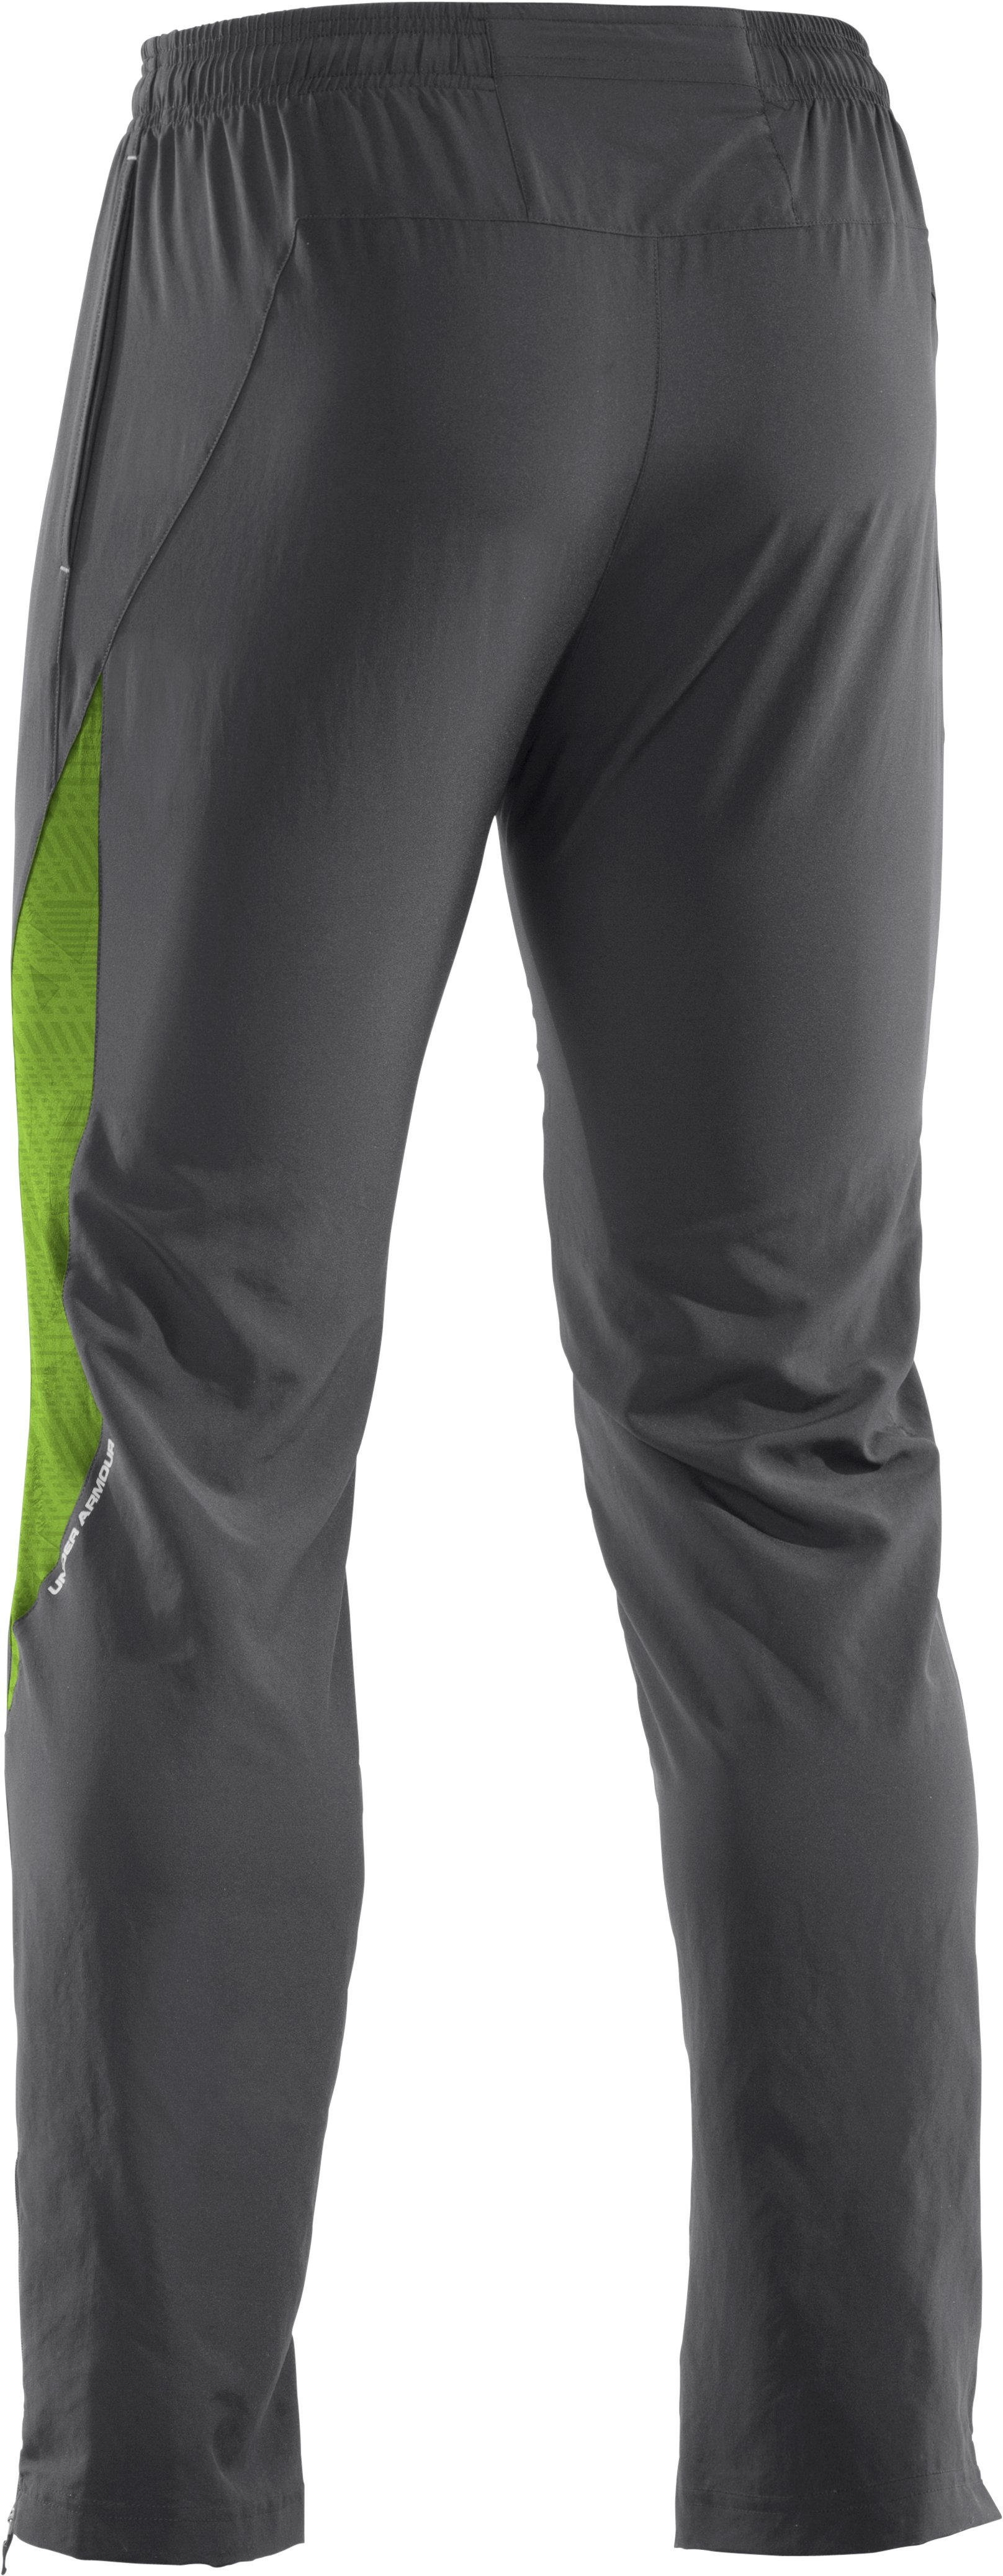 Men's UA Imminent Run Pants, Graphite